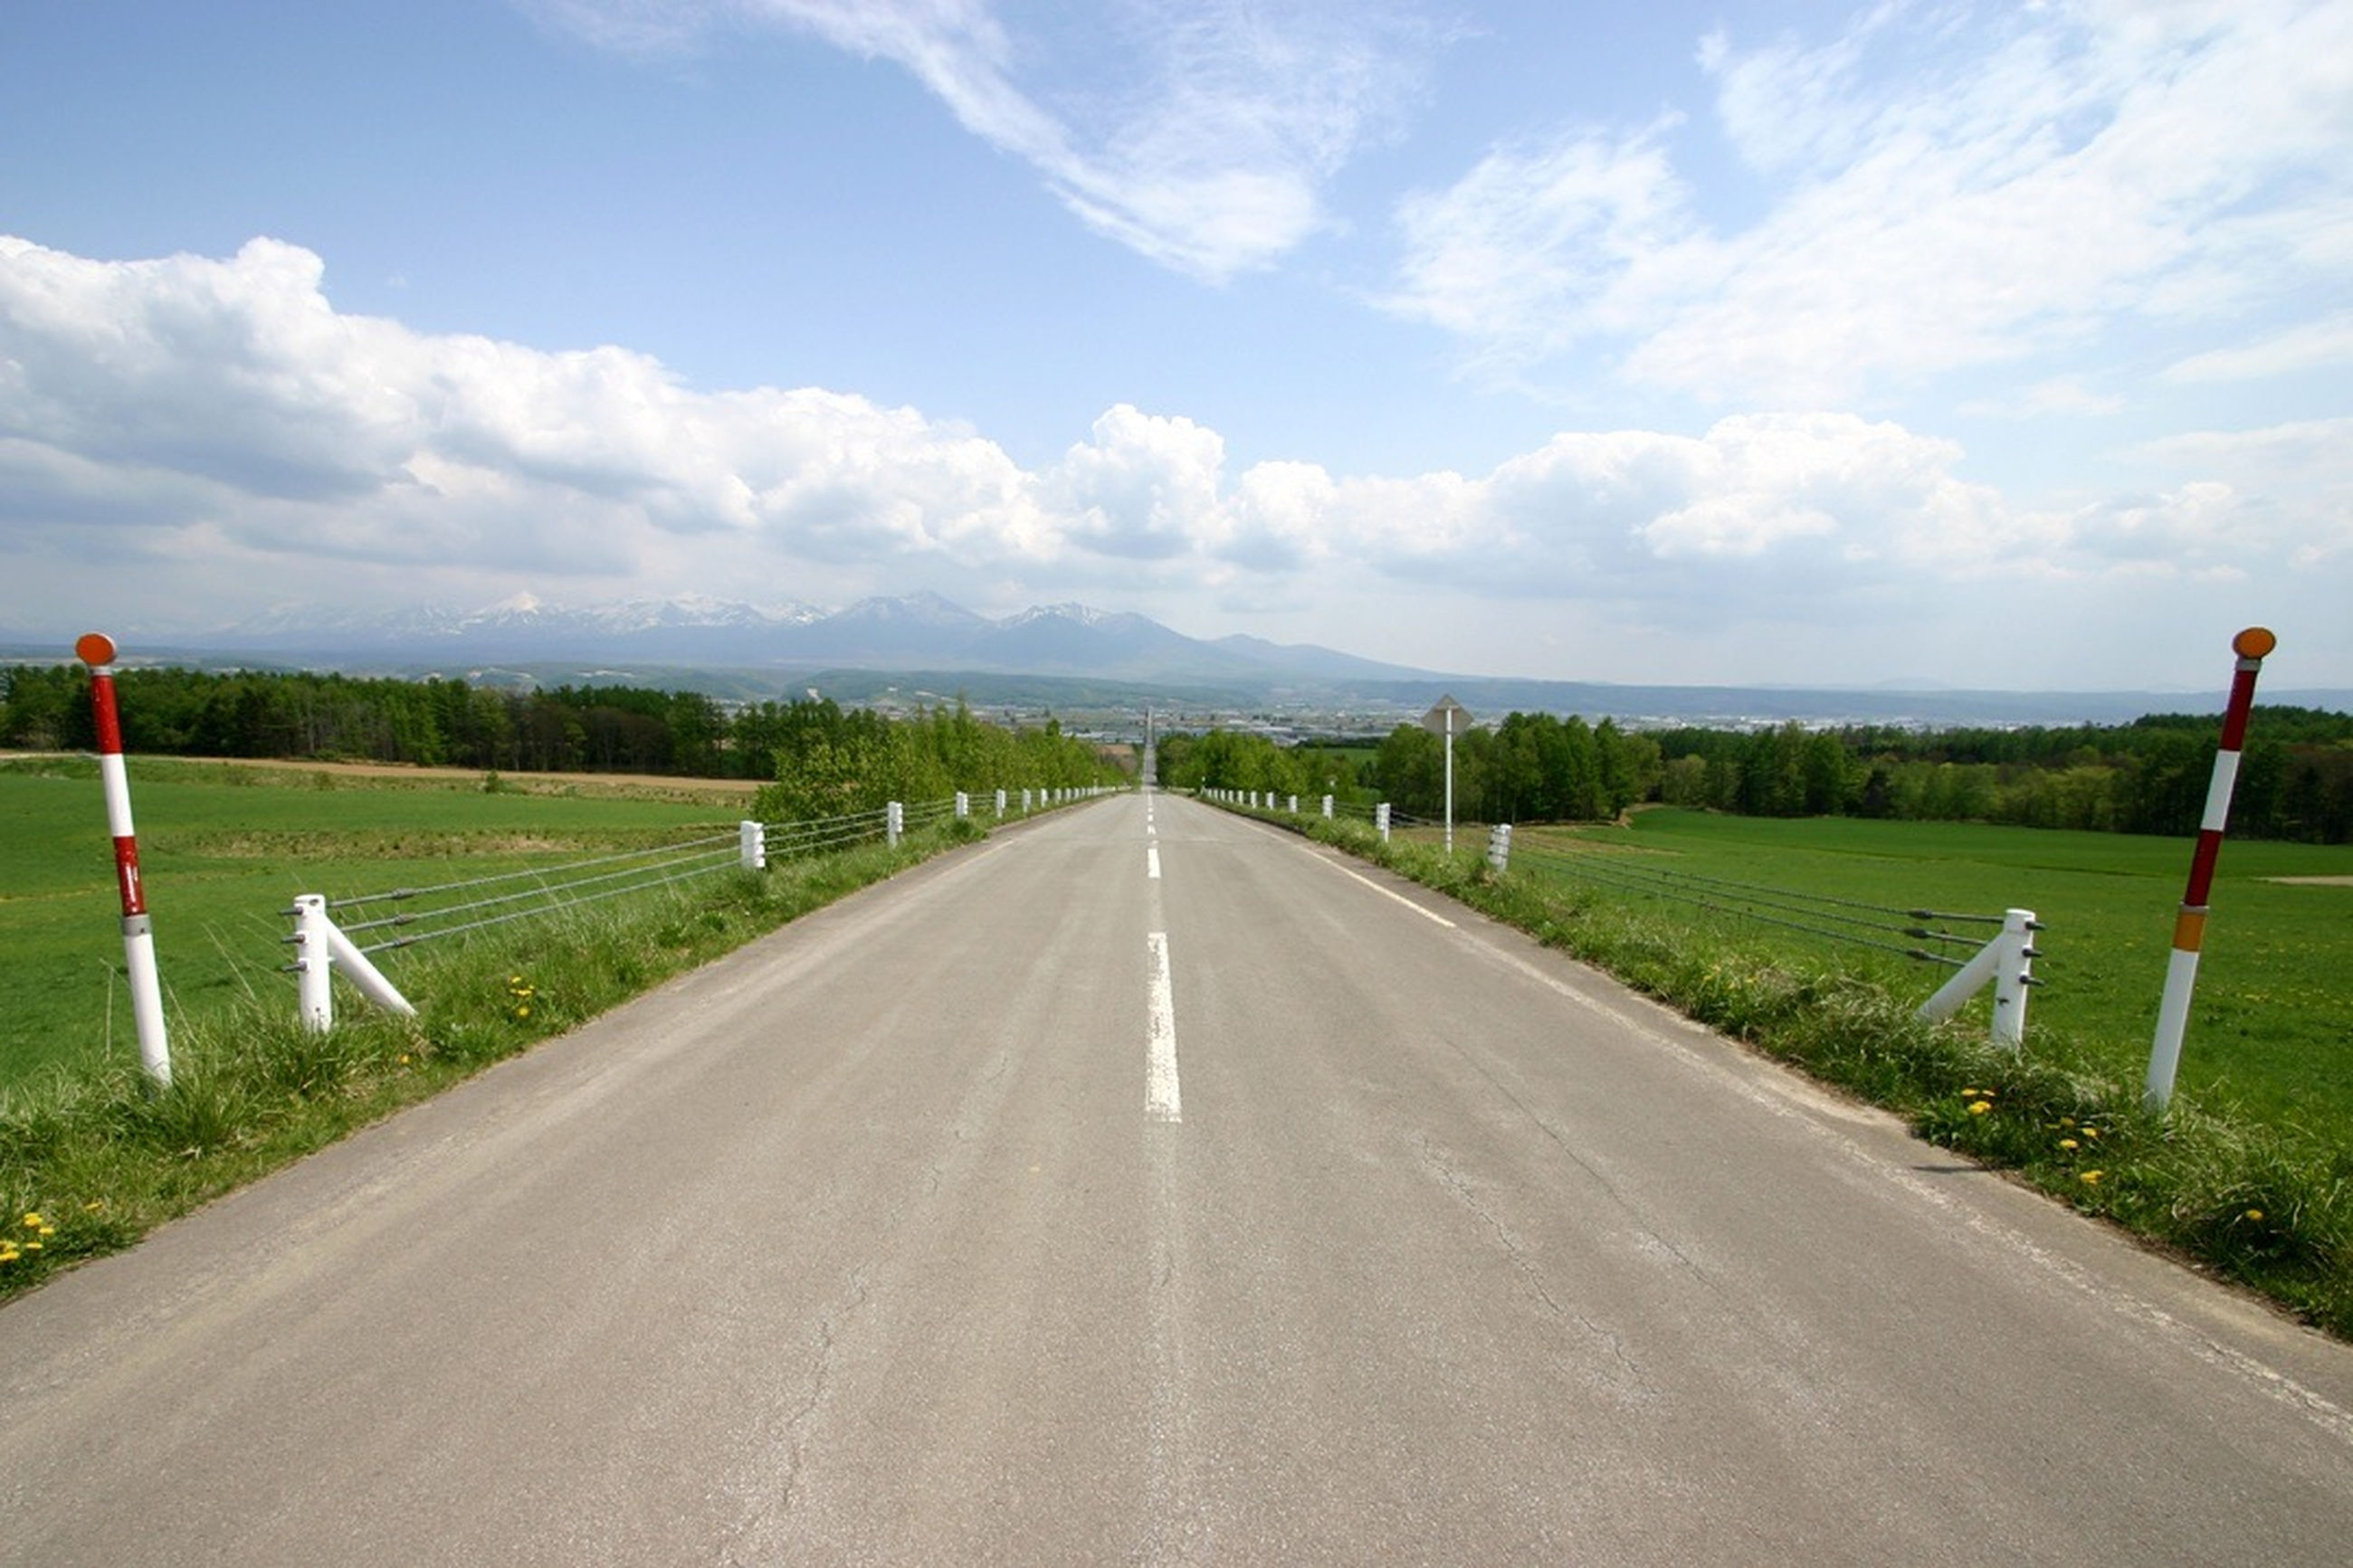 the way forward, road, diminishing perspective, sky, transportation, vanishing point, road marking, country road, landscape, cloud - sky, tranquil scene, tranquility, grass, field, cloud, empty road, empty, nature, cloudy, scenics